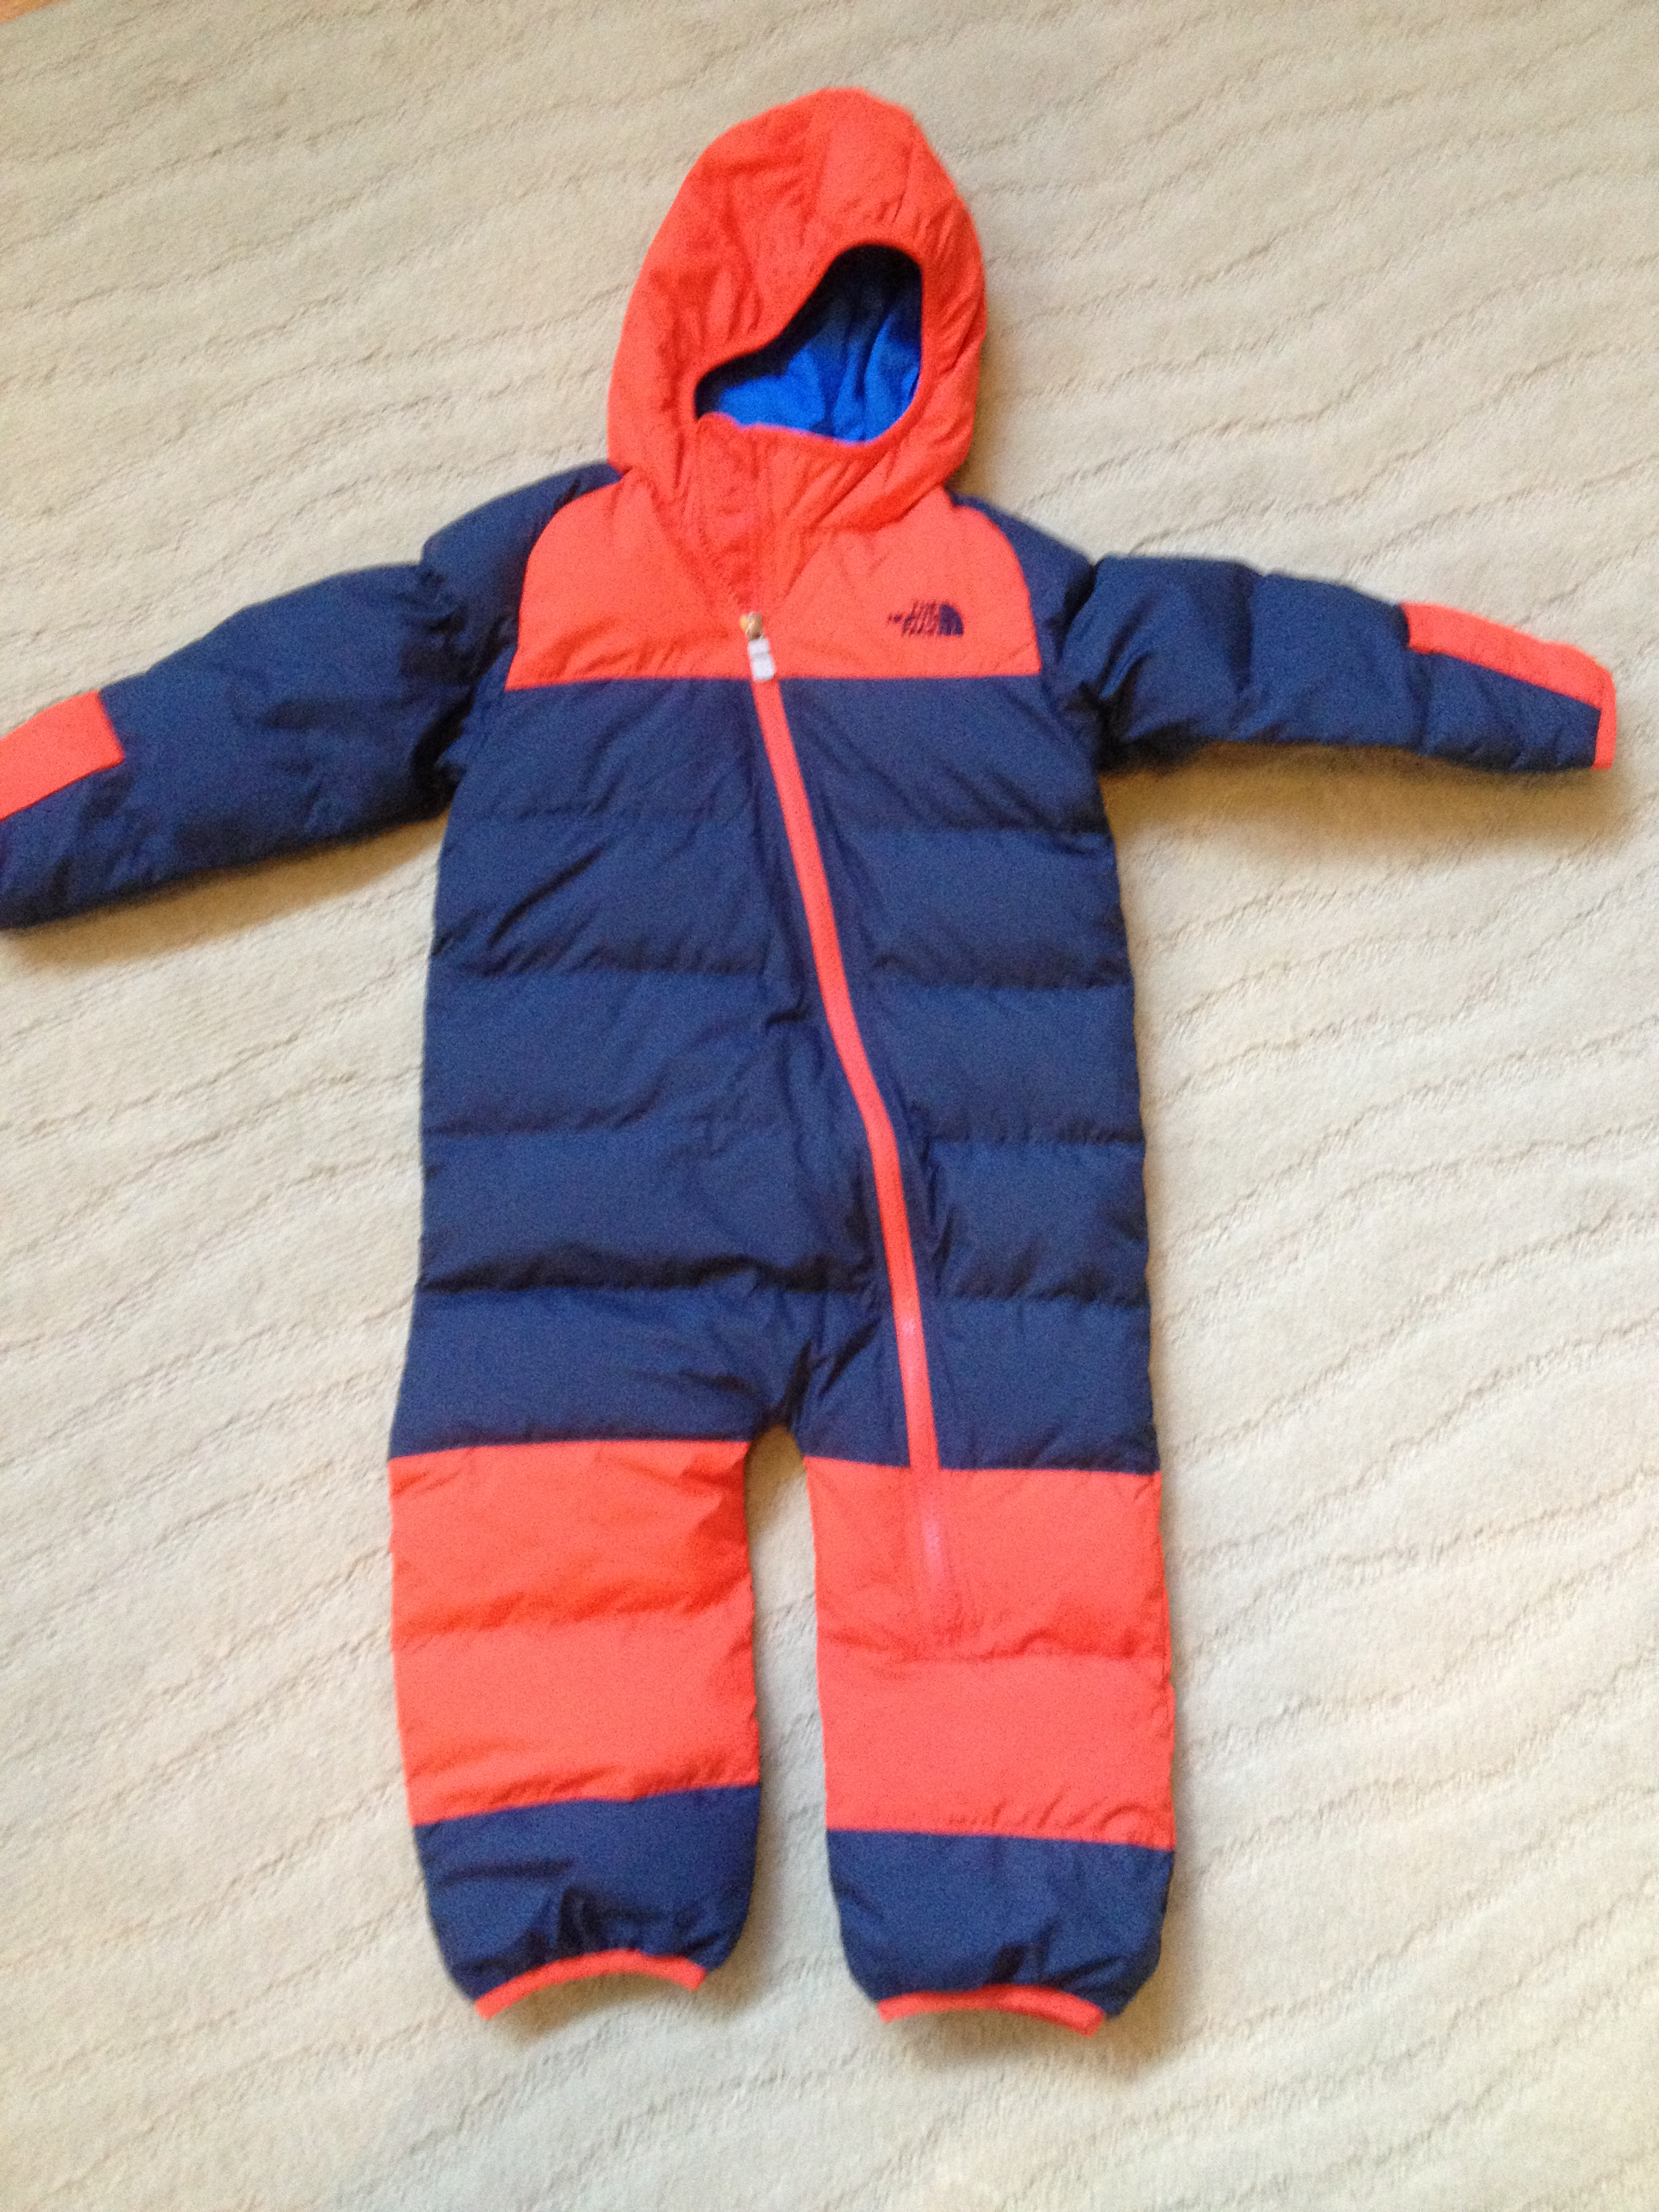 58fcb28284be THE NORTH FACE INFANT LIL  SNUGGLER DOWN SUIT